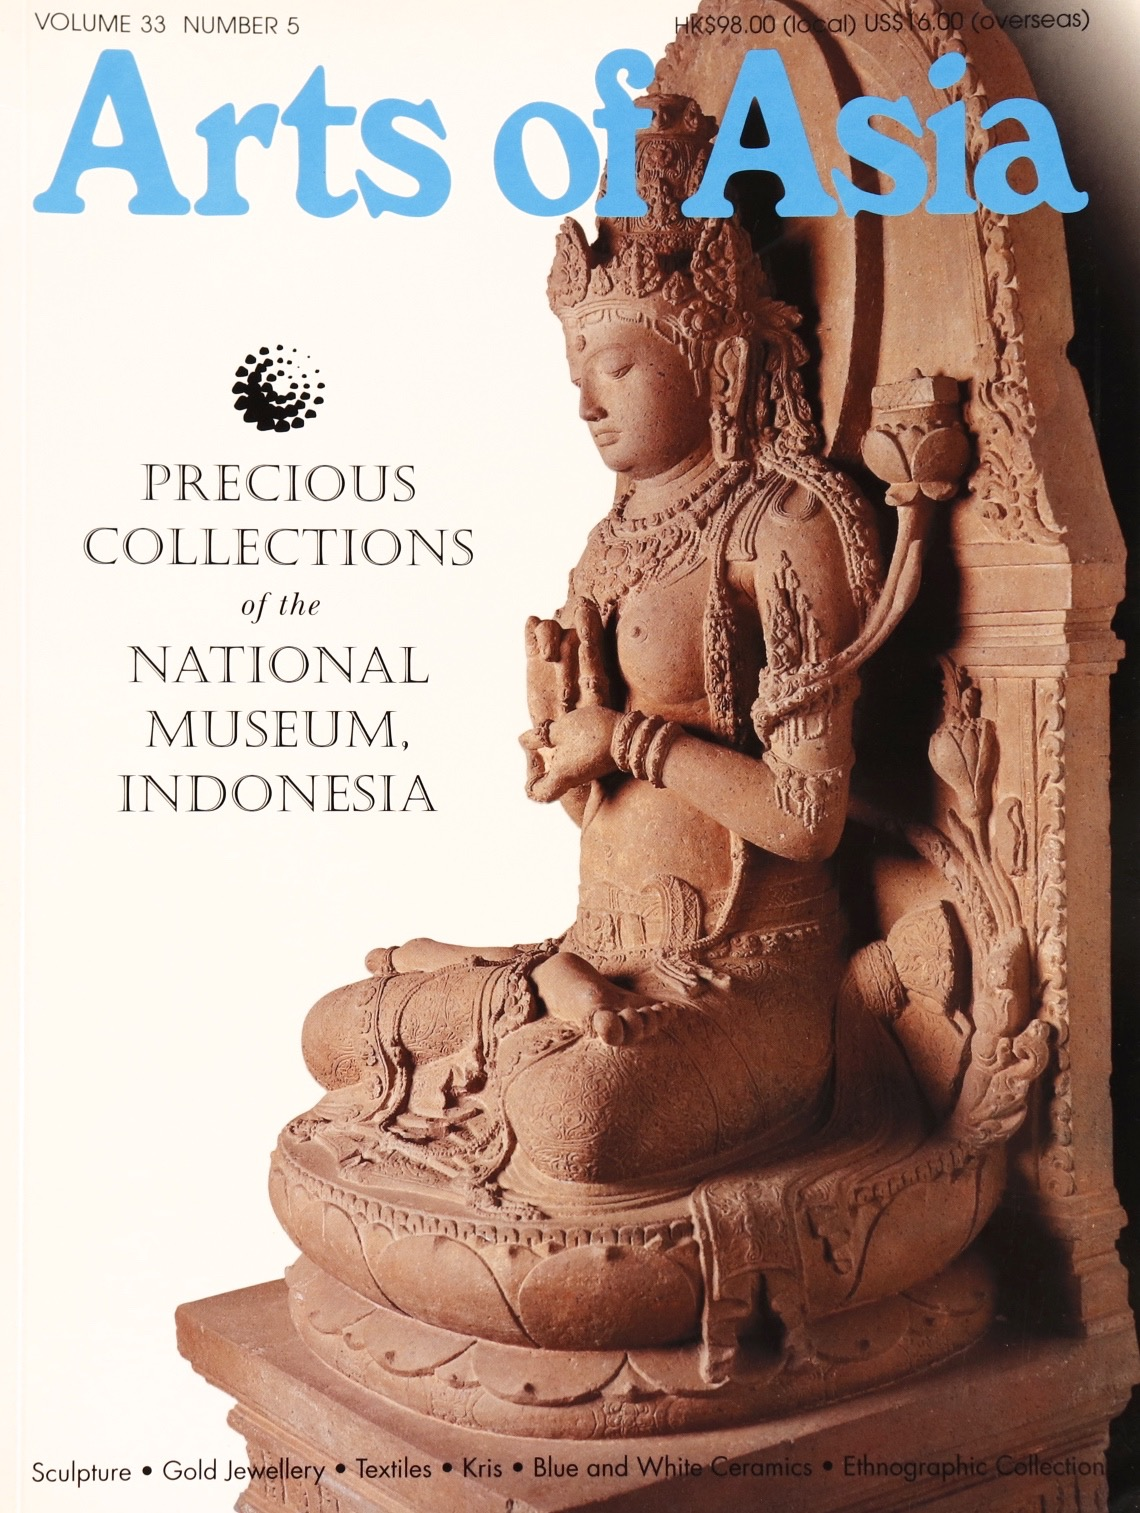 Arts of Asia Volume 33 Number 5 National Museum Indonesia Tuyet Nguyet Robin Markbreiter